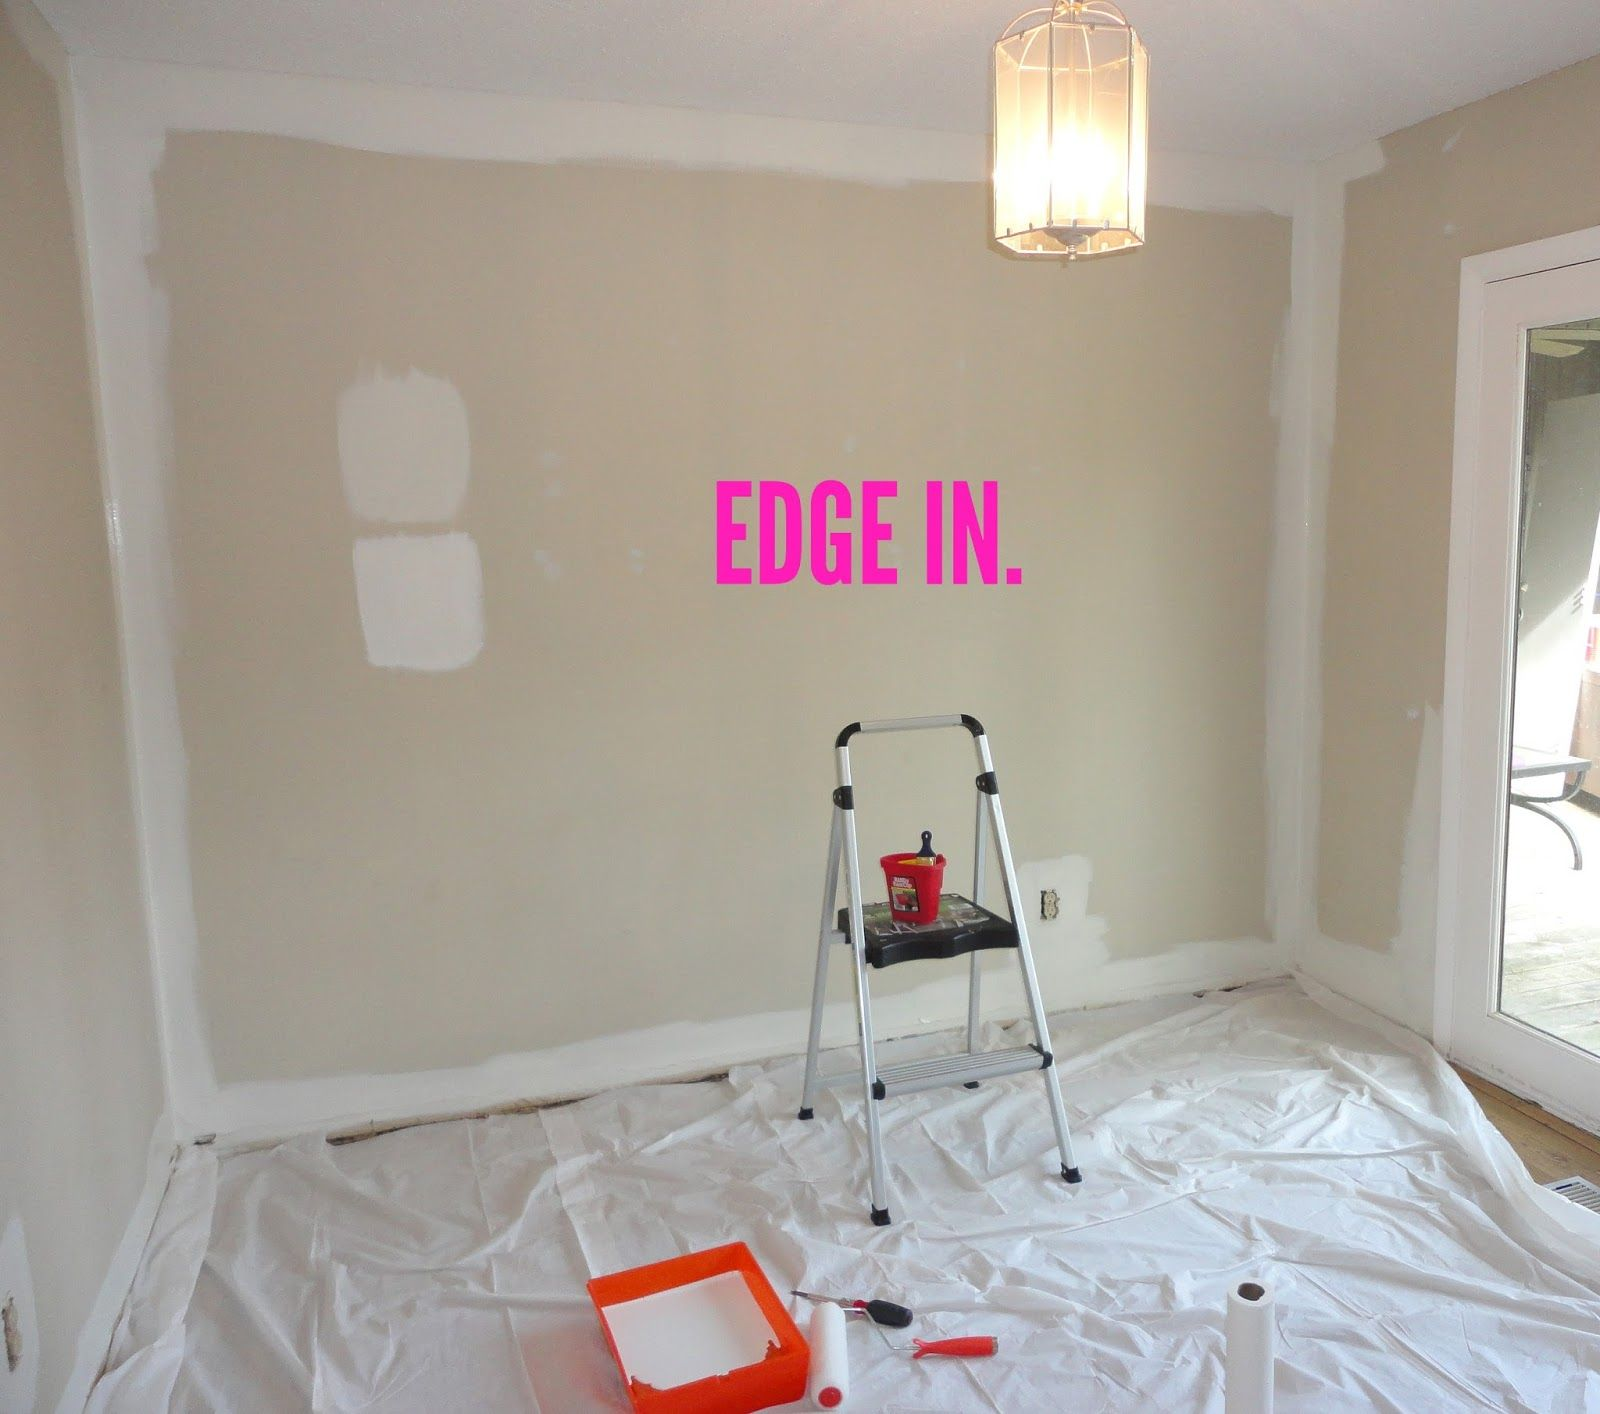 How To Paint A Room In 10 Easy Steps A Complete Tutorial With Everything You Need To Know Including What Small Room Paint Room Paint Steps To Painting A Room